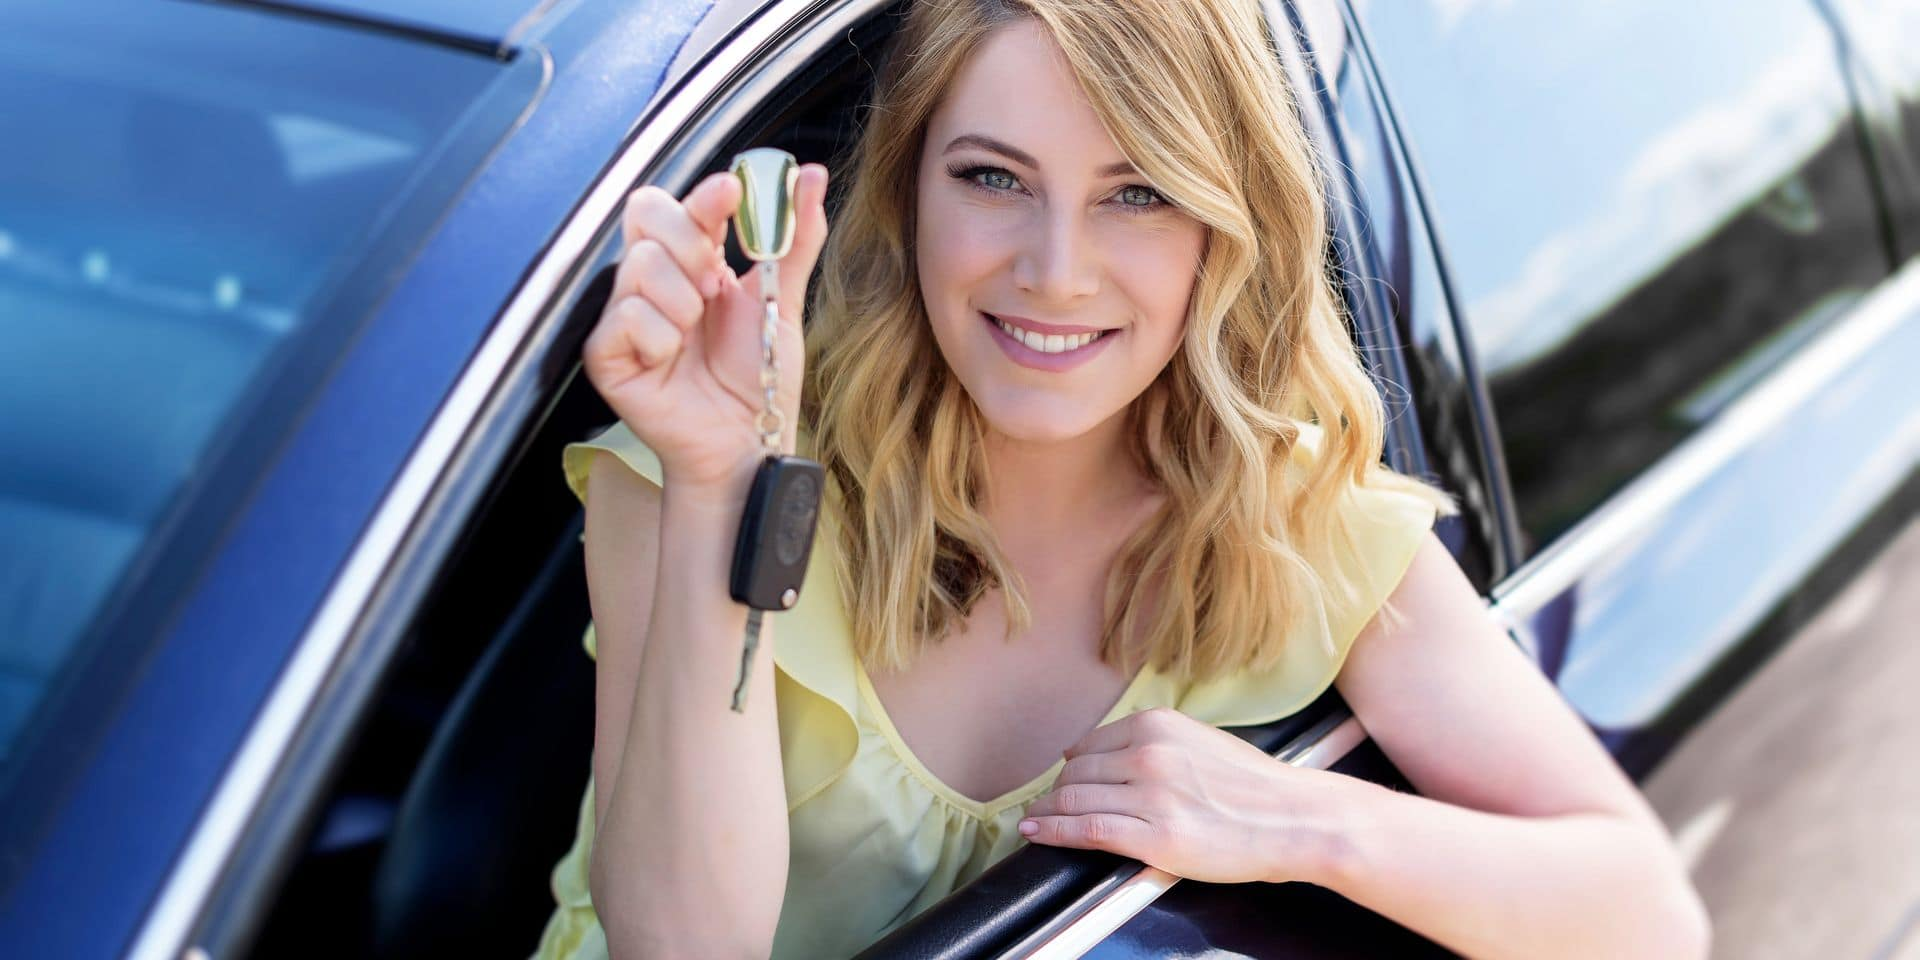 An,Attractive,Woman,In,A,Car,Holds,A,Car,Key